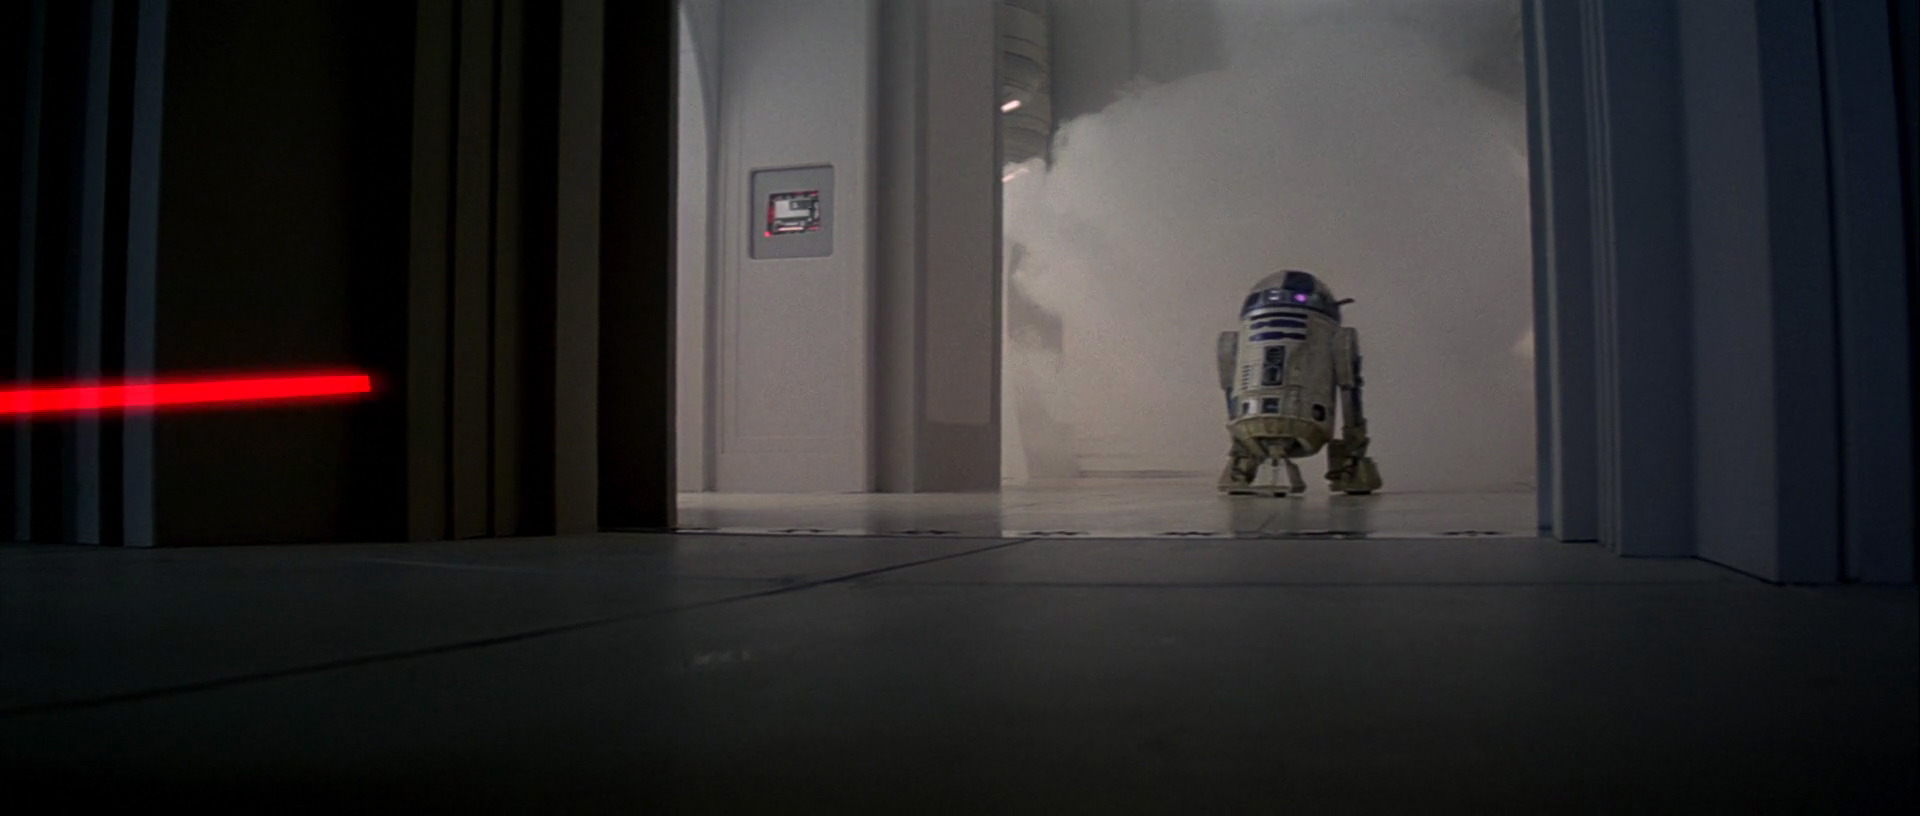 R2D2 who's known as Artoo Detoo in Star Wars The Empire Strikes Back which is Star Wars Episode V which is a Star Wars movie called The Empire Strikes back which features R2D2 who's known as Artoo Detoo.